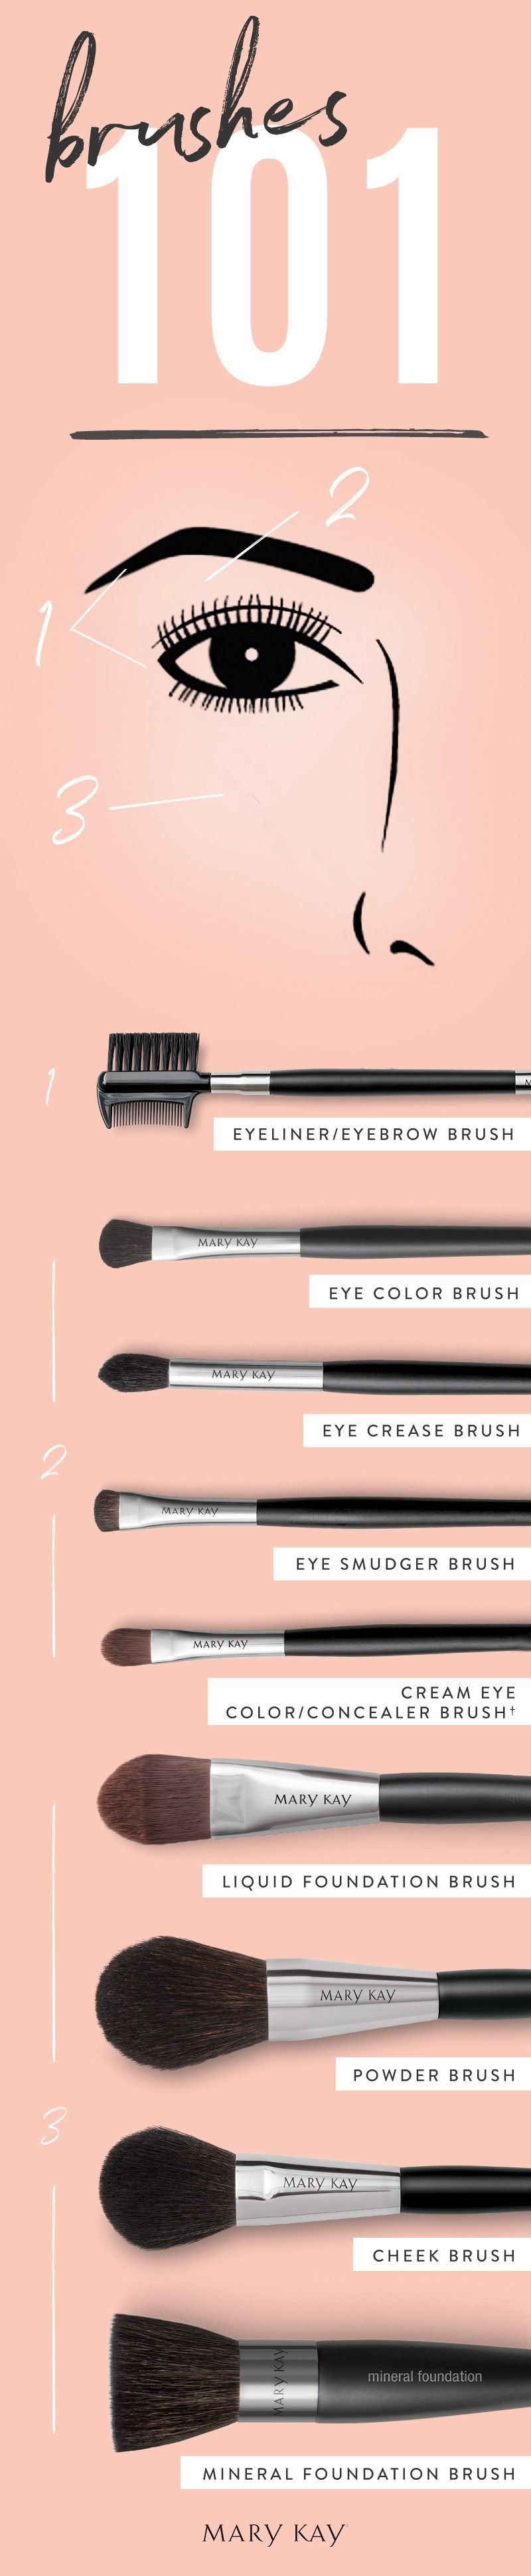 Eye Makeup Application Easy As 1 2 3 Each Mary Kay Brush Is